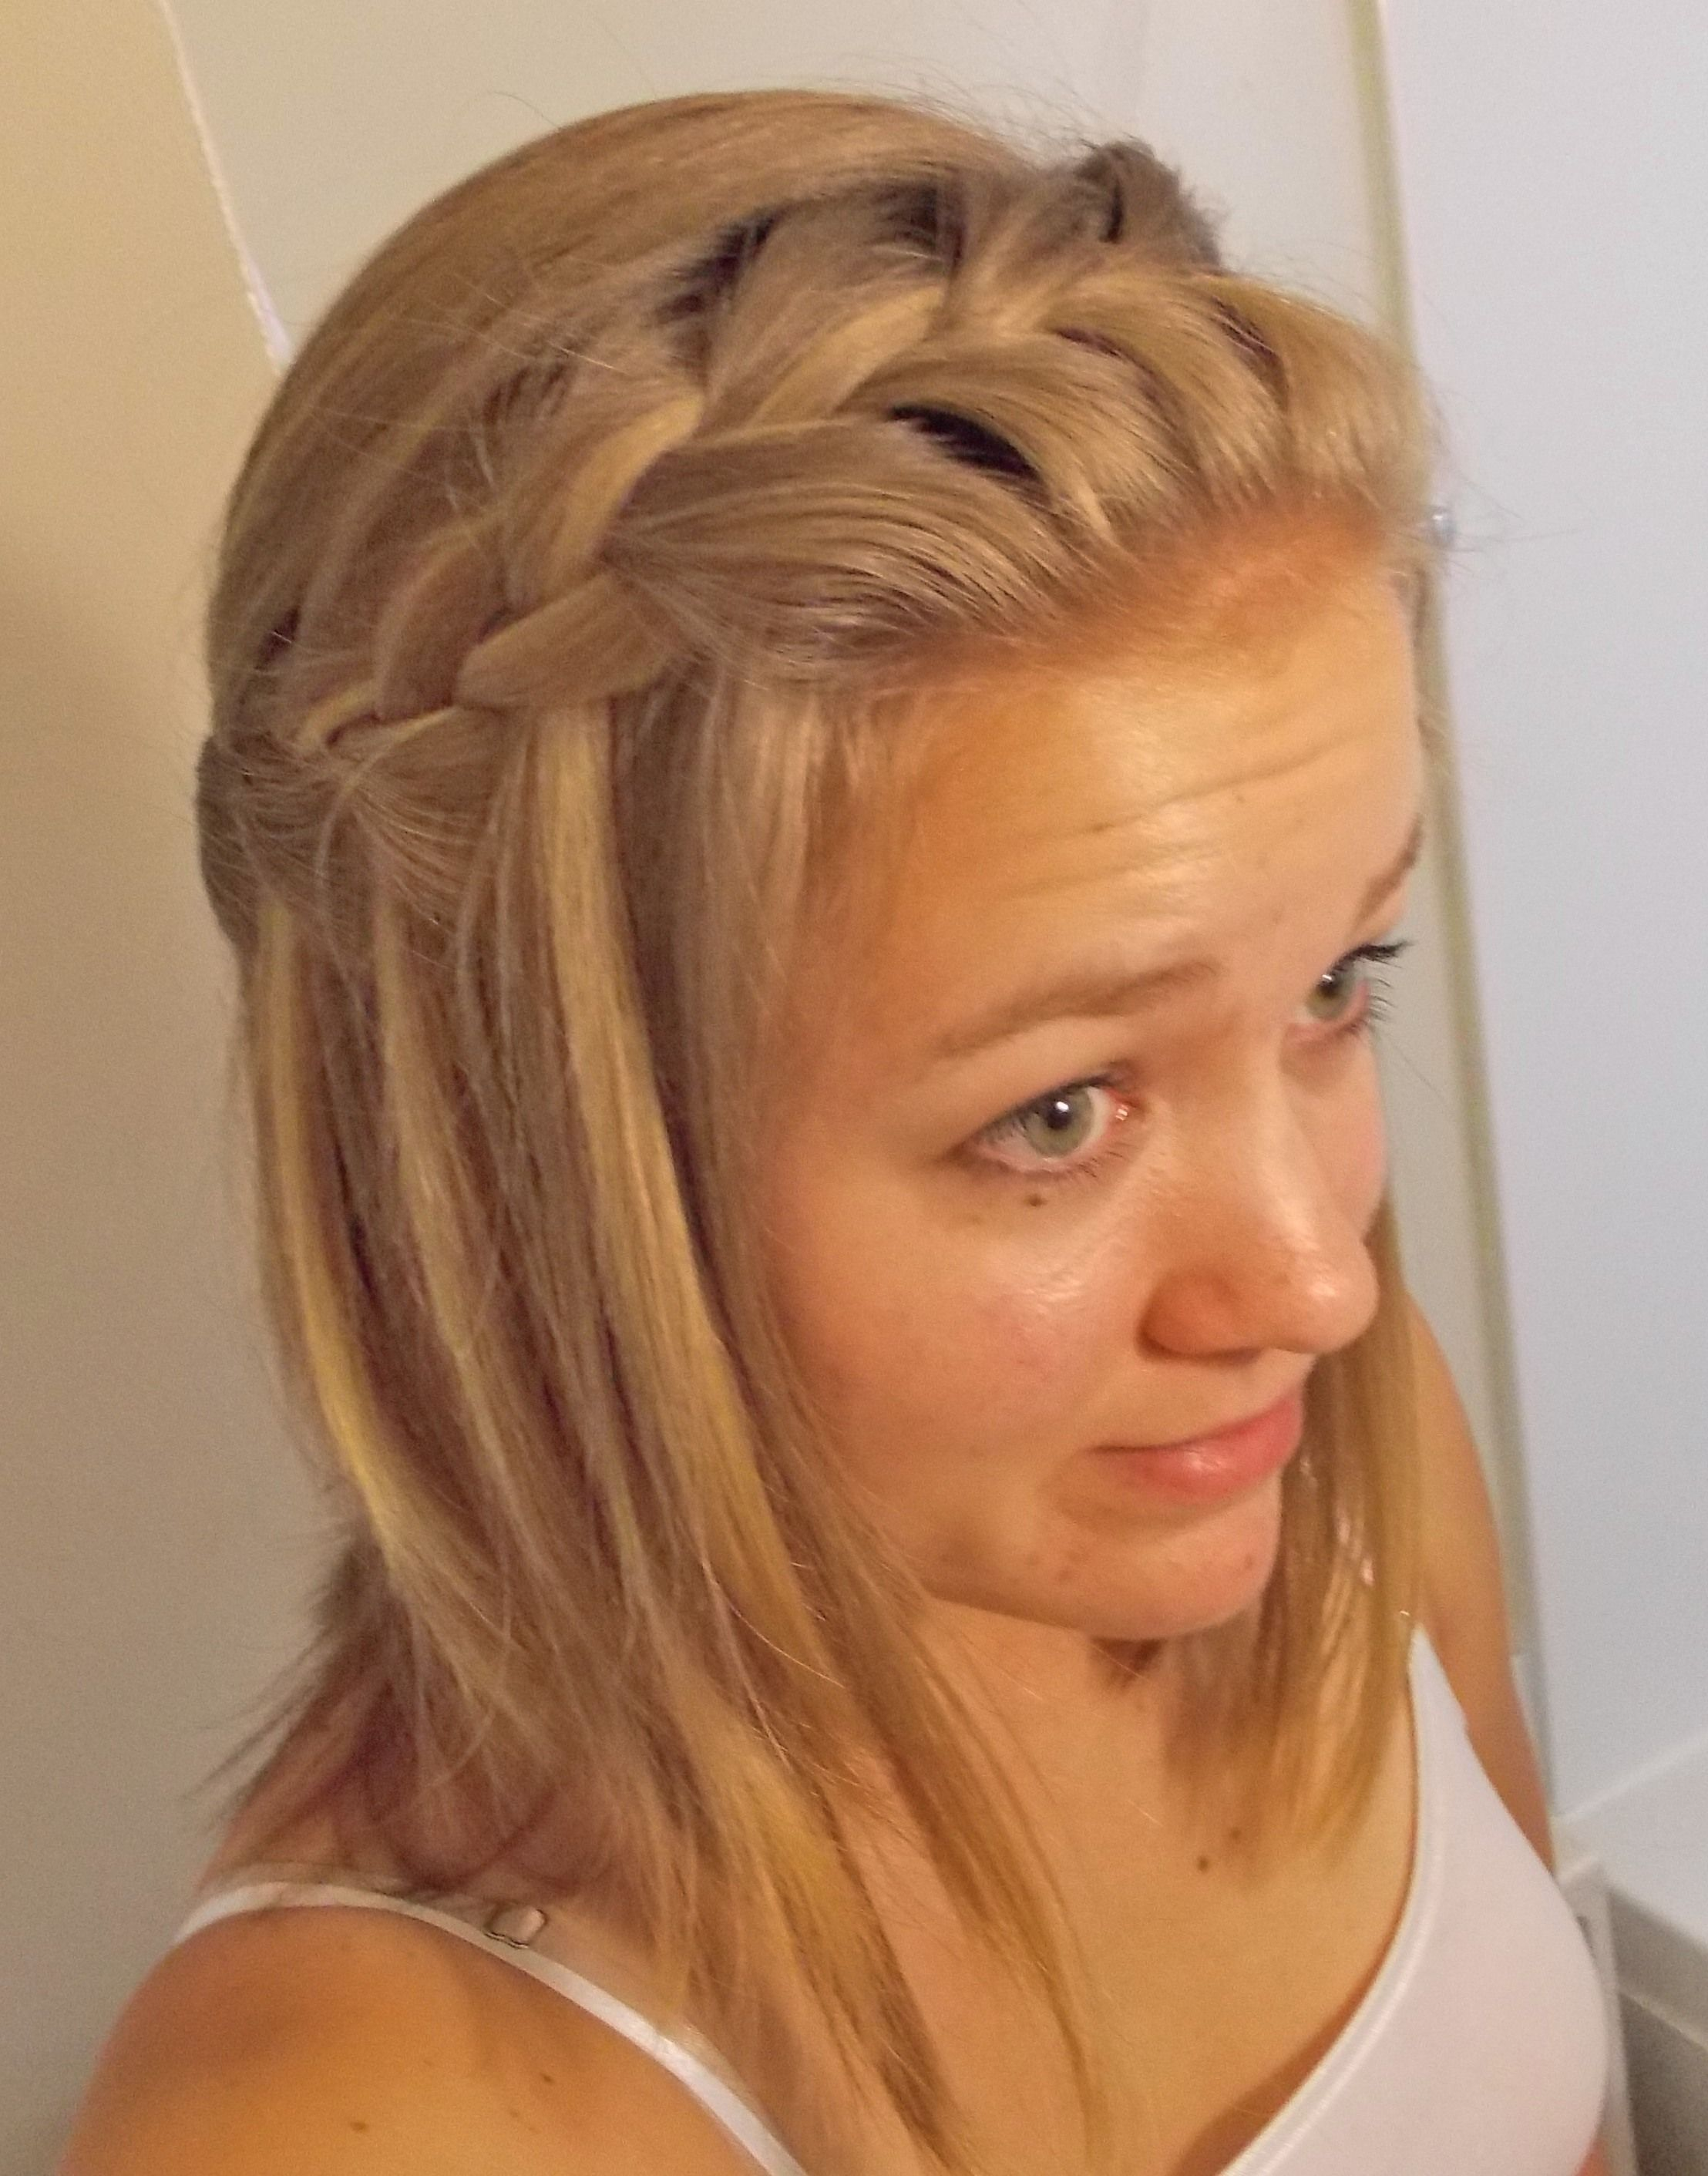 Phenomenal 1000 Images About Braid Hairstyle On Pinterest Waterfall Braids Hairstyle Inspiration Daily Dogsangcom